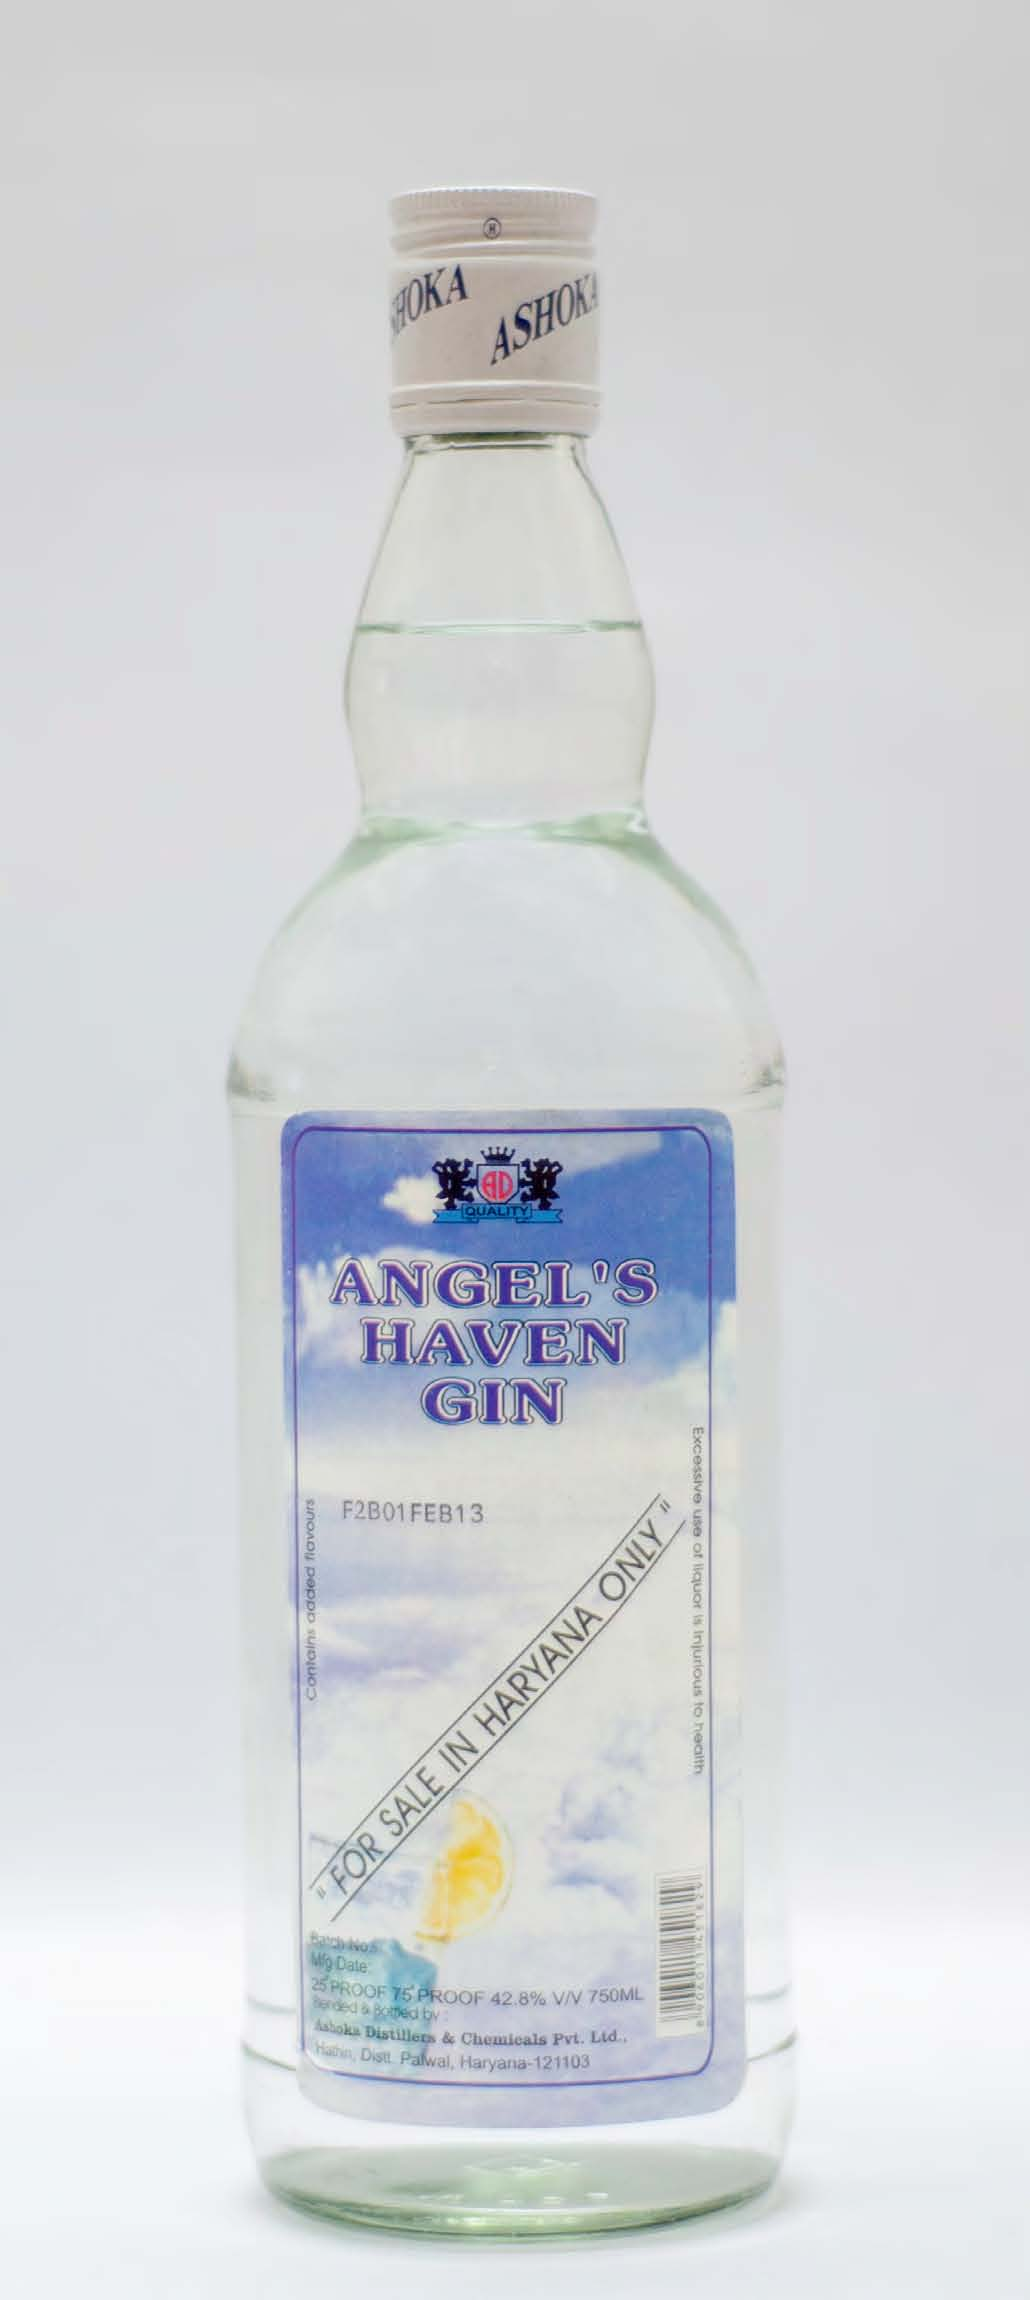 Angel's Haven Gin